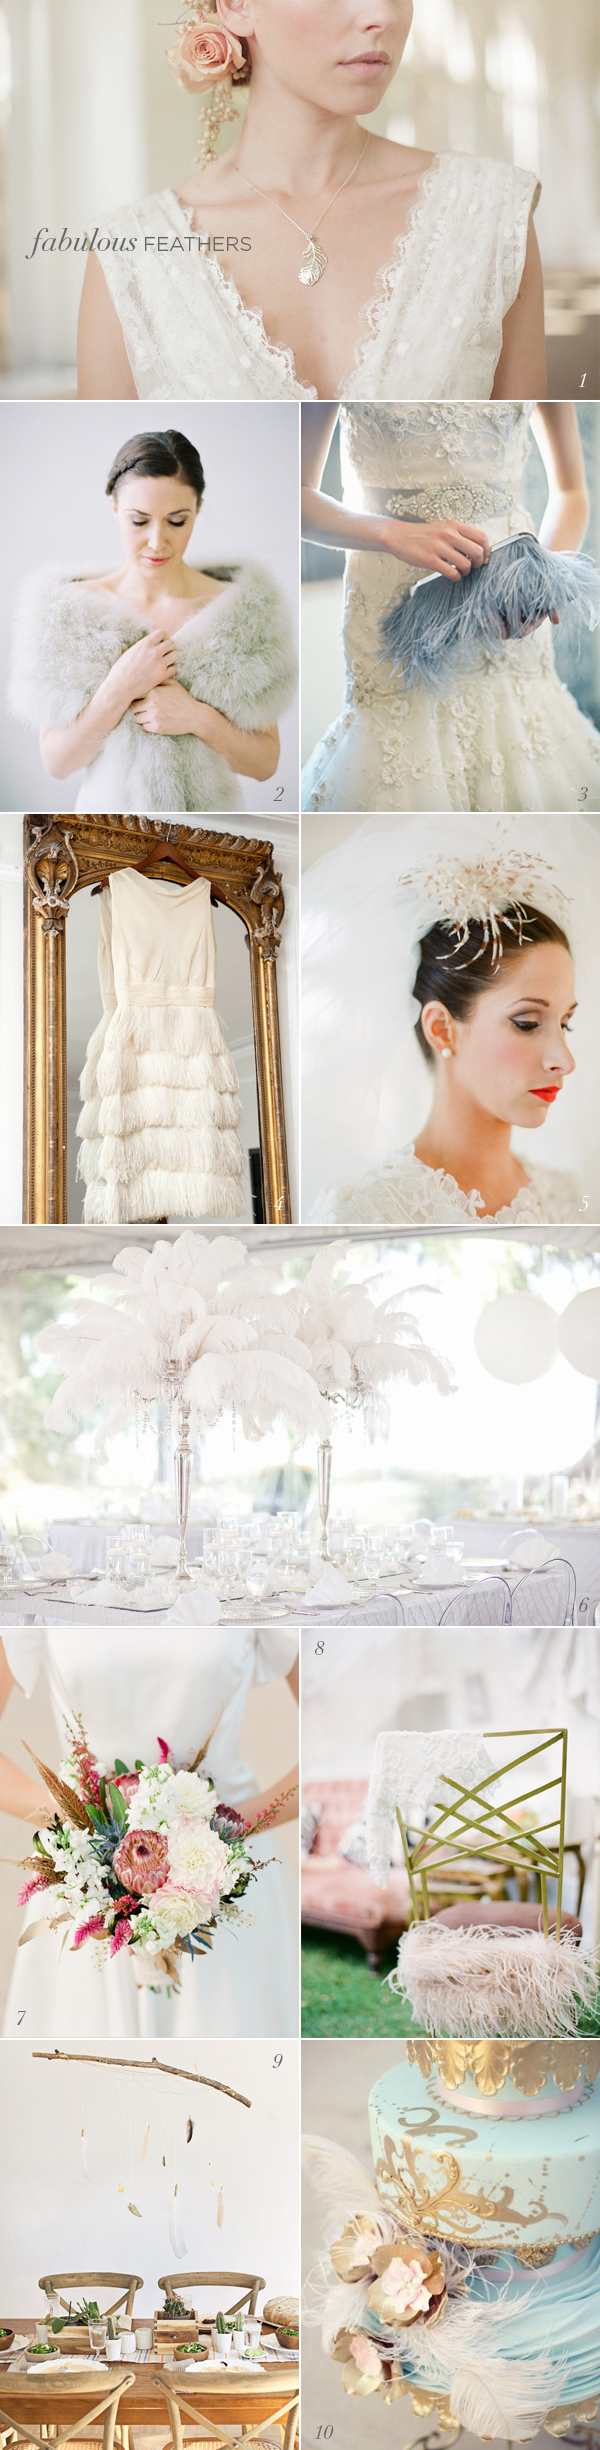 Feather Wedding Details